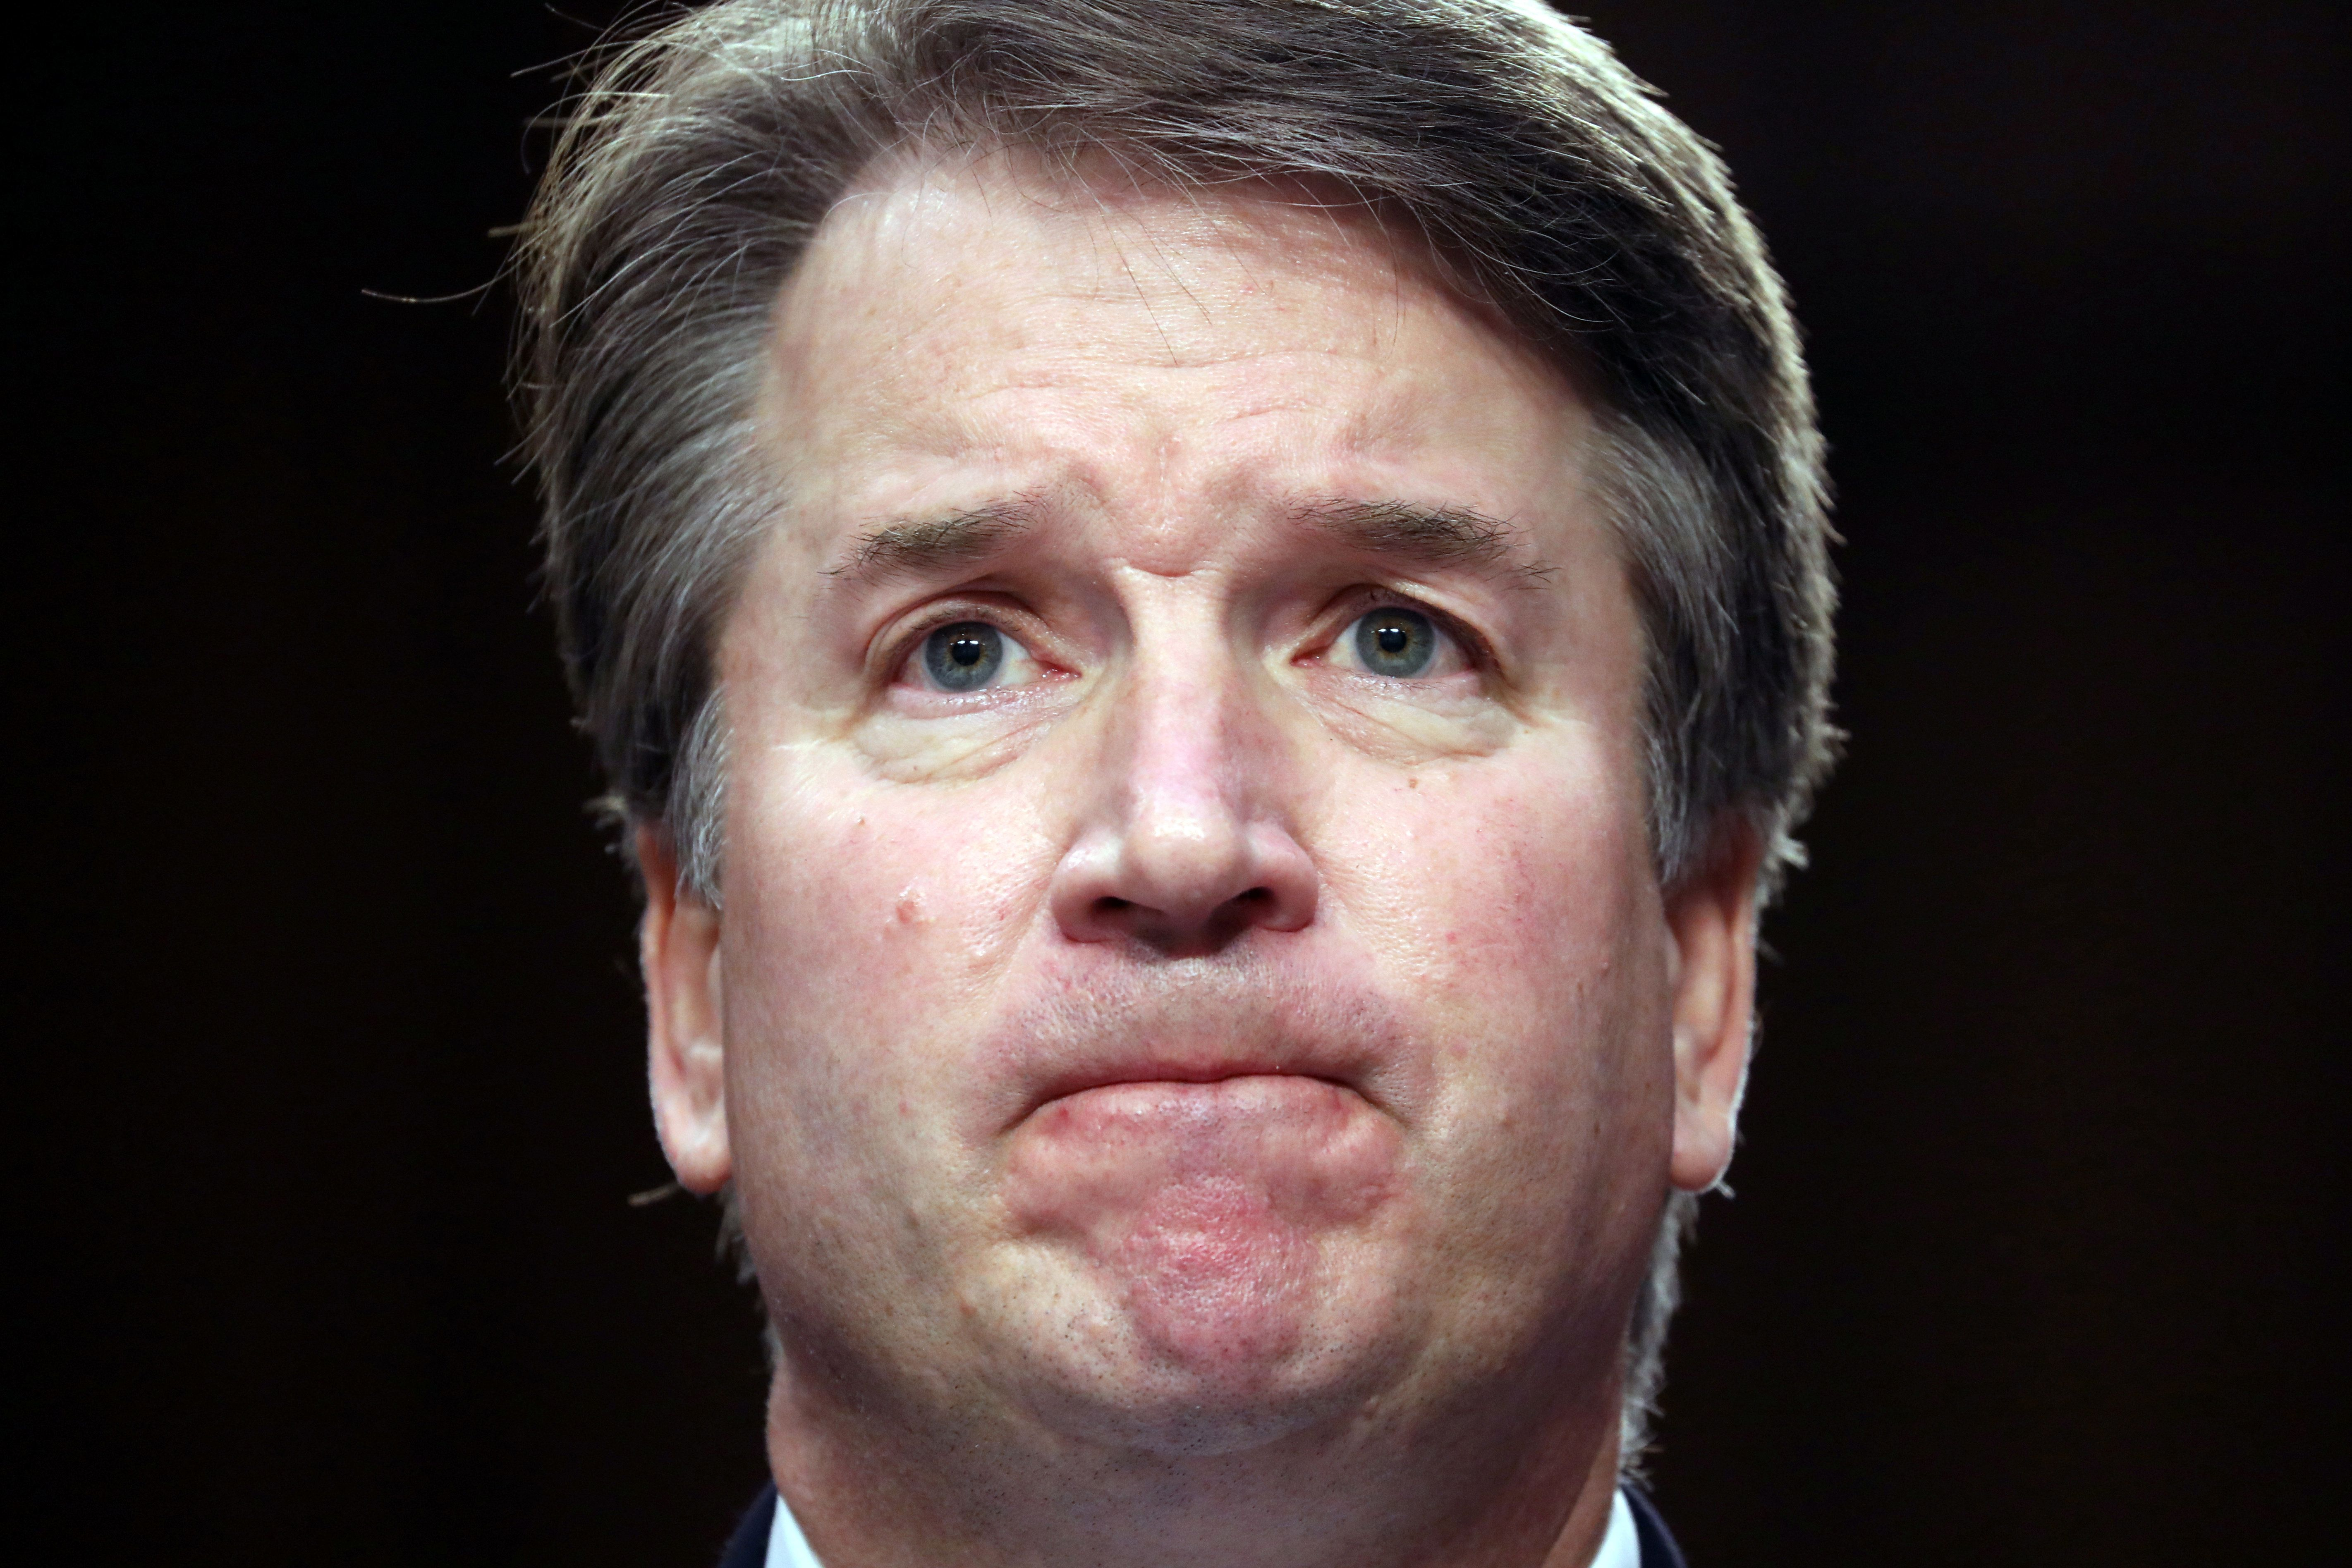 Supreme Court nominee Brett Kavanaugh is one of only two nominees out of 163 in history to be accused of sexual misconduct.